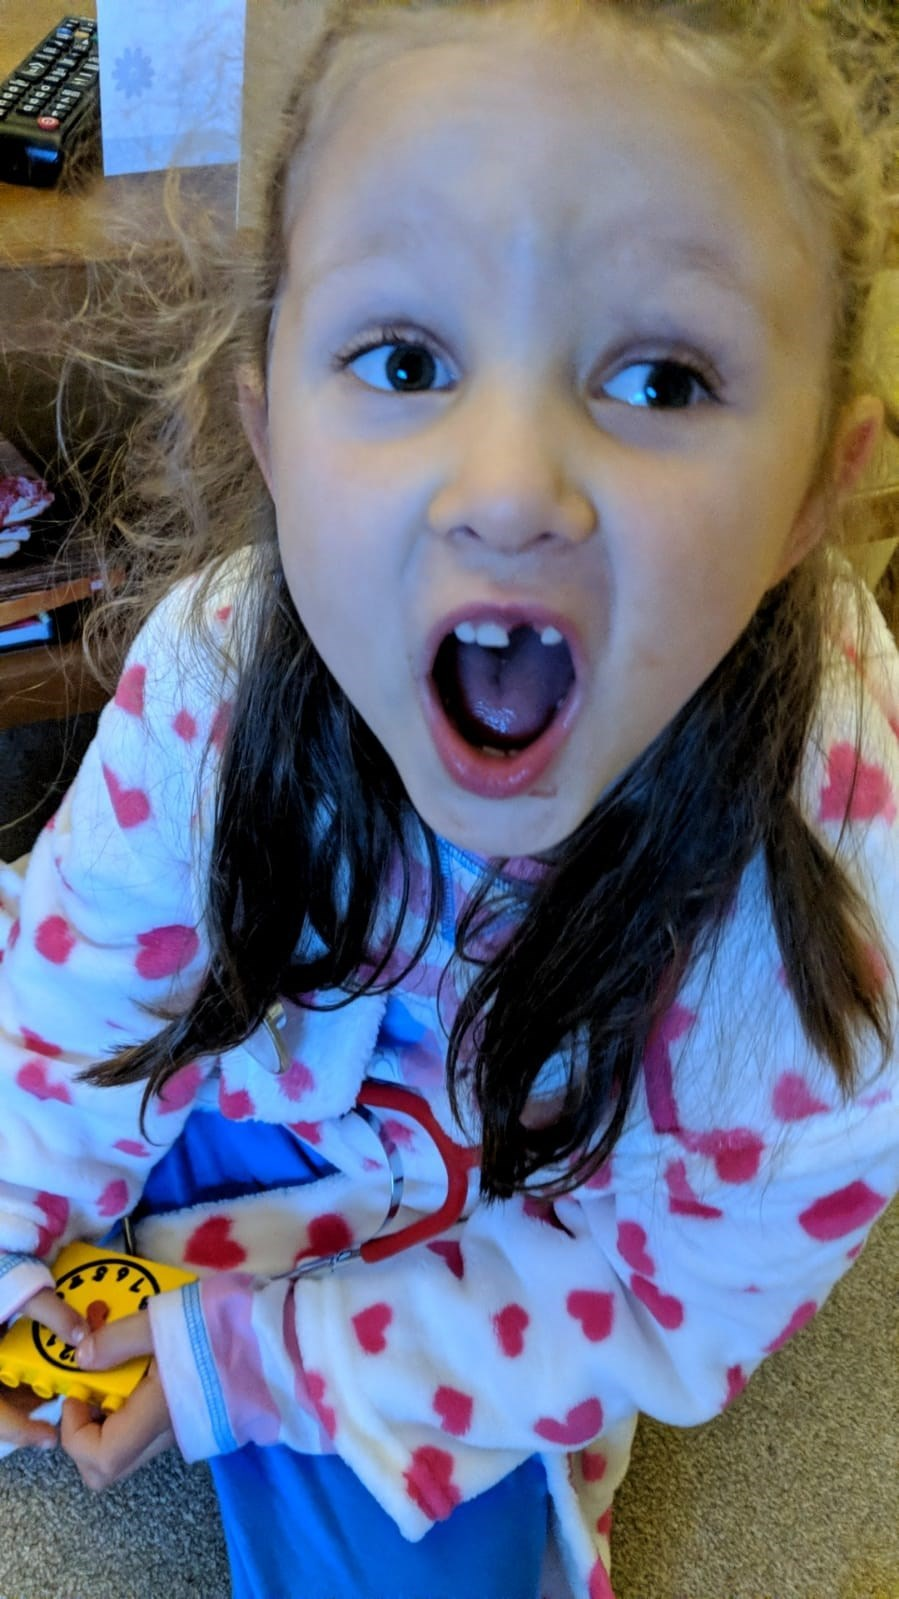 Losing your 1st tooth